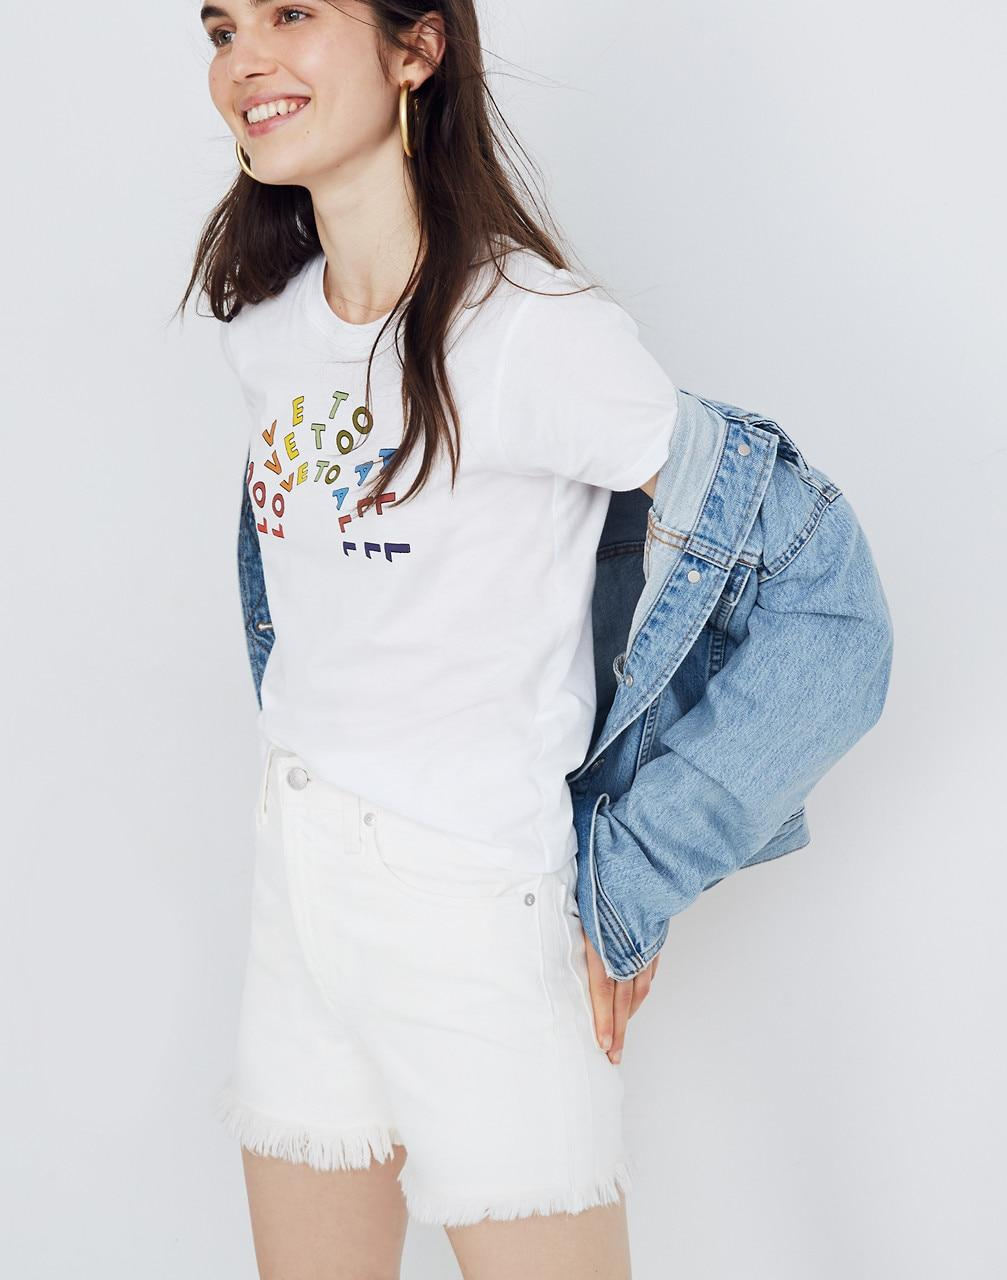 8181704d9d Lyst - Madewell X Human Rights Campaign Love To All Pride Tee in White